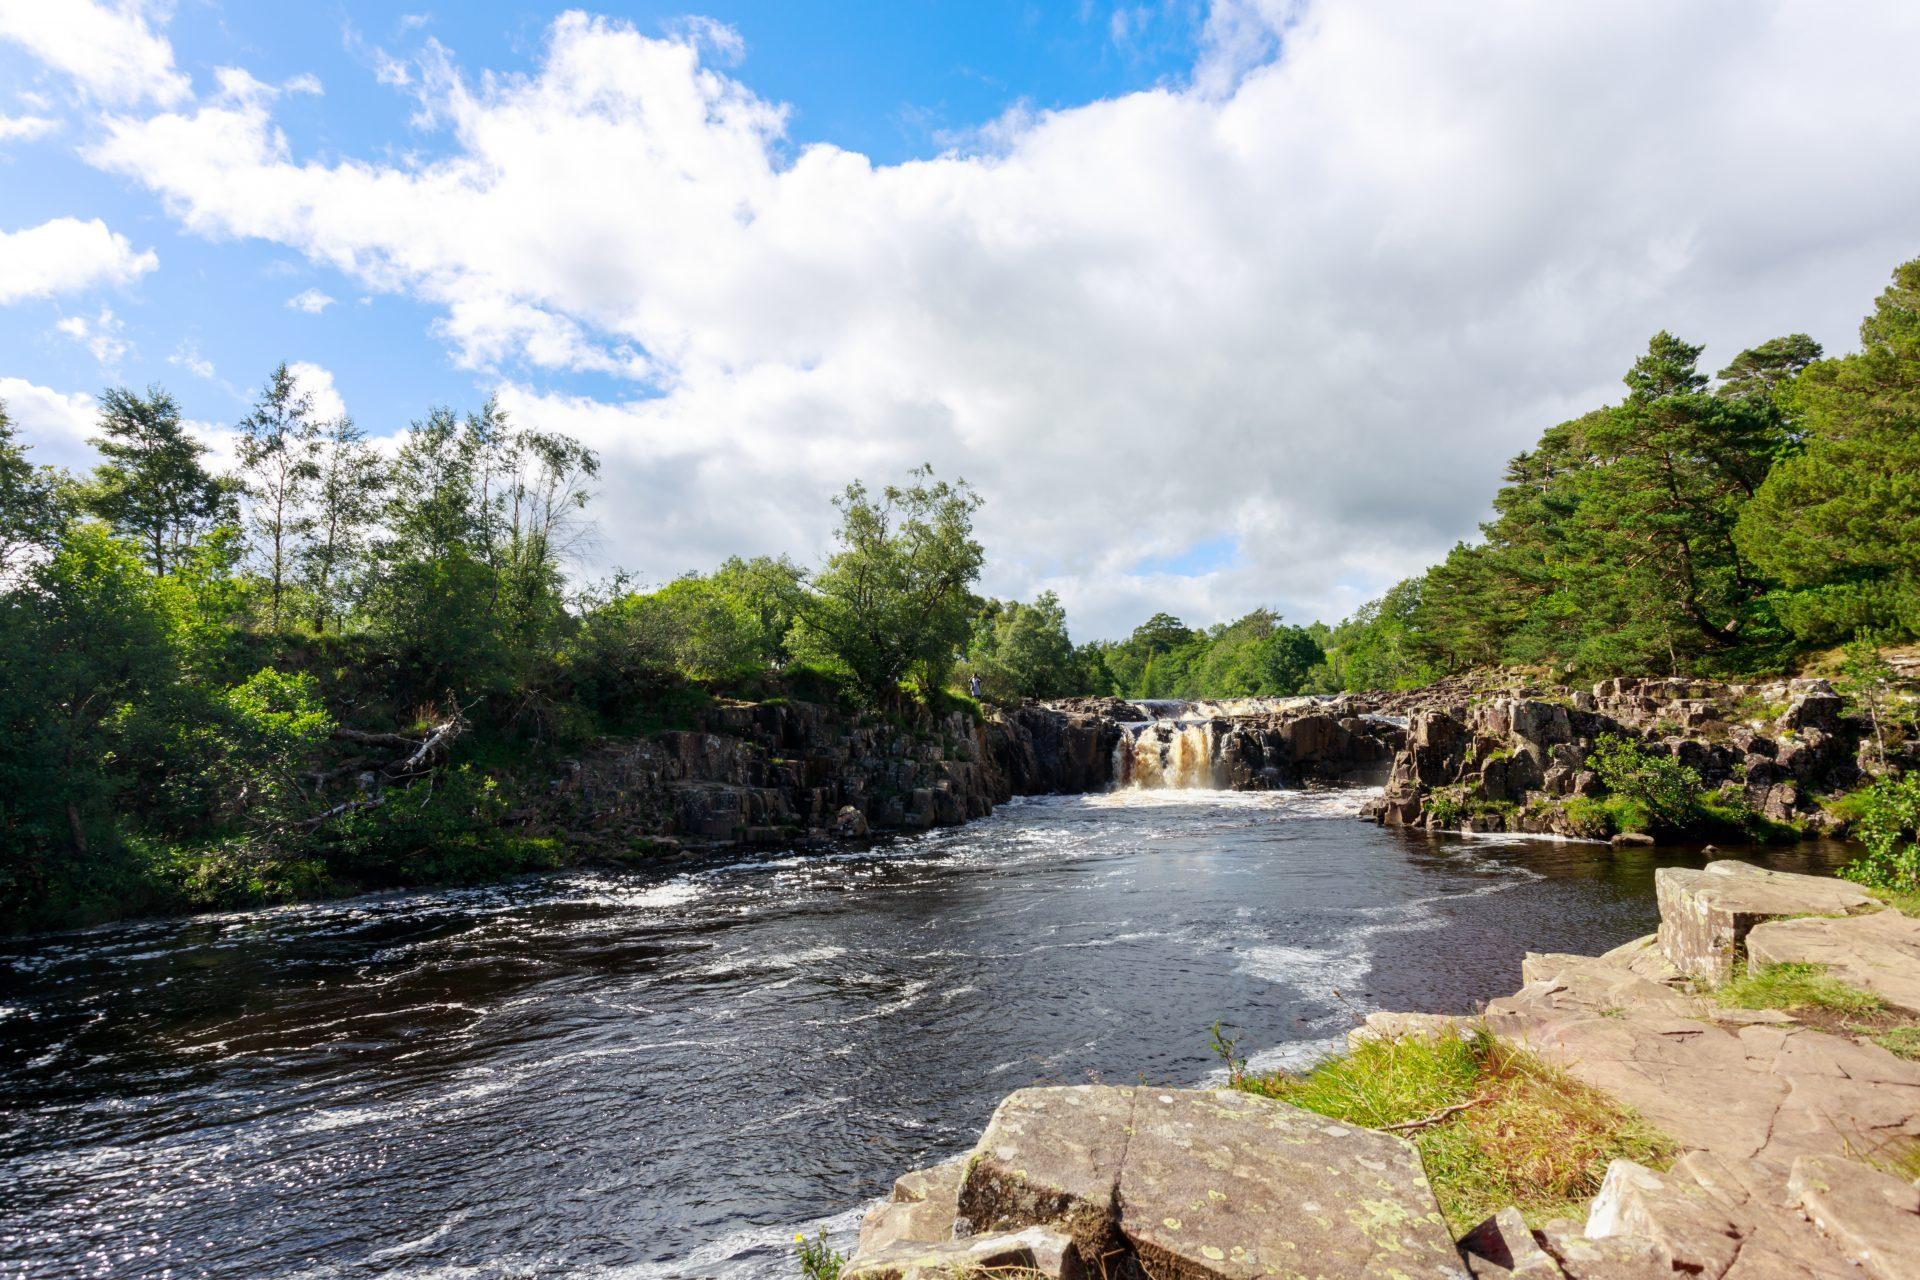 Low Force Waterfall on the Pennine Way, Bowlees Tees Valley, County Durham